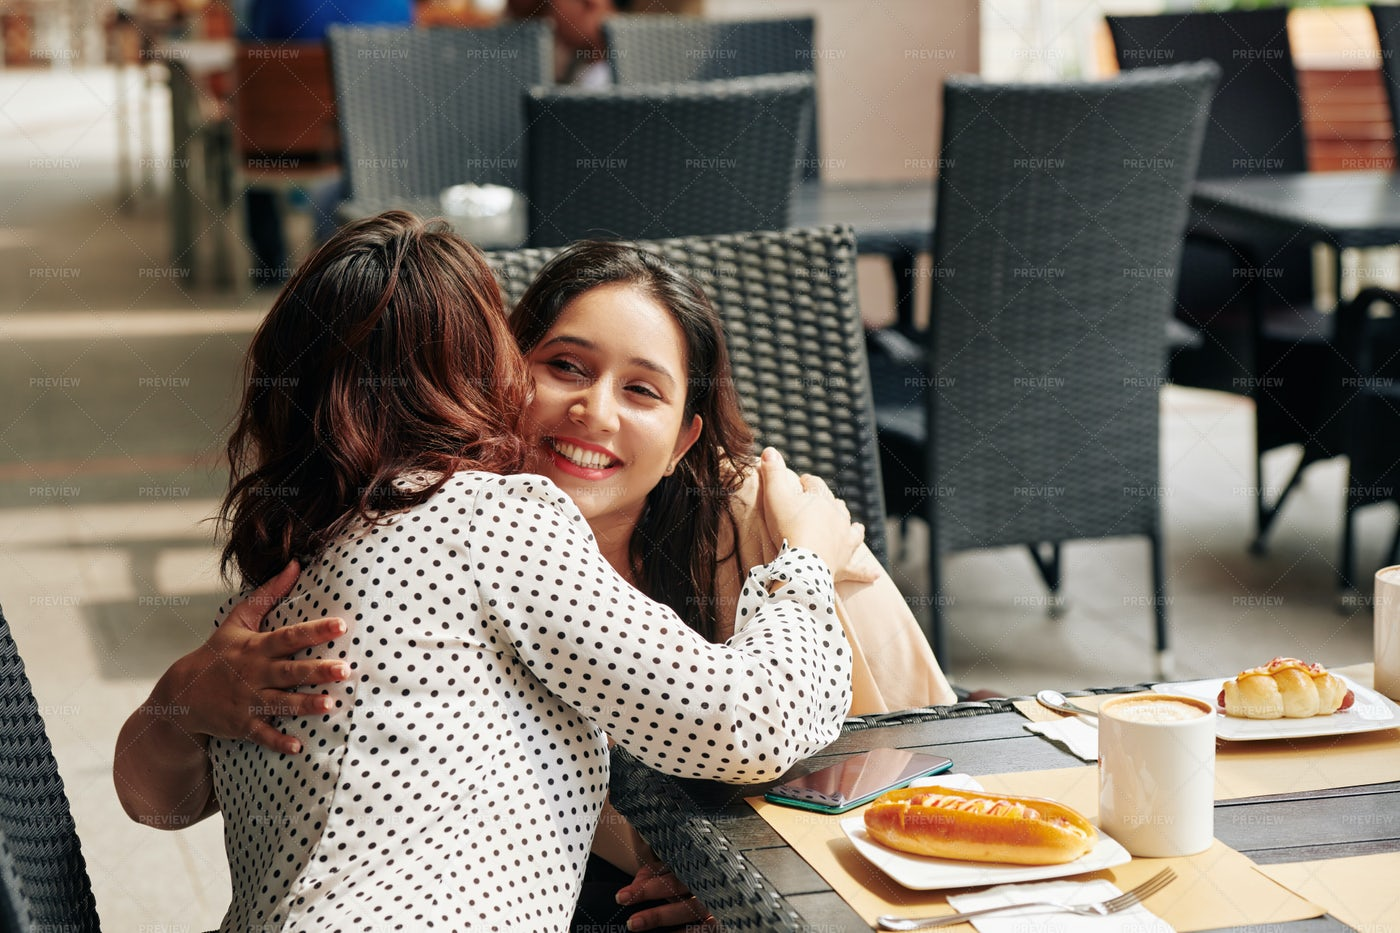 Firends Hugging At Cafe Table: Stock Photos